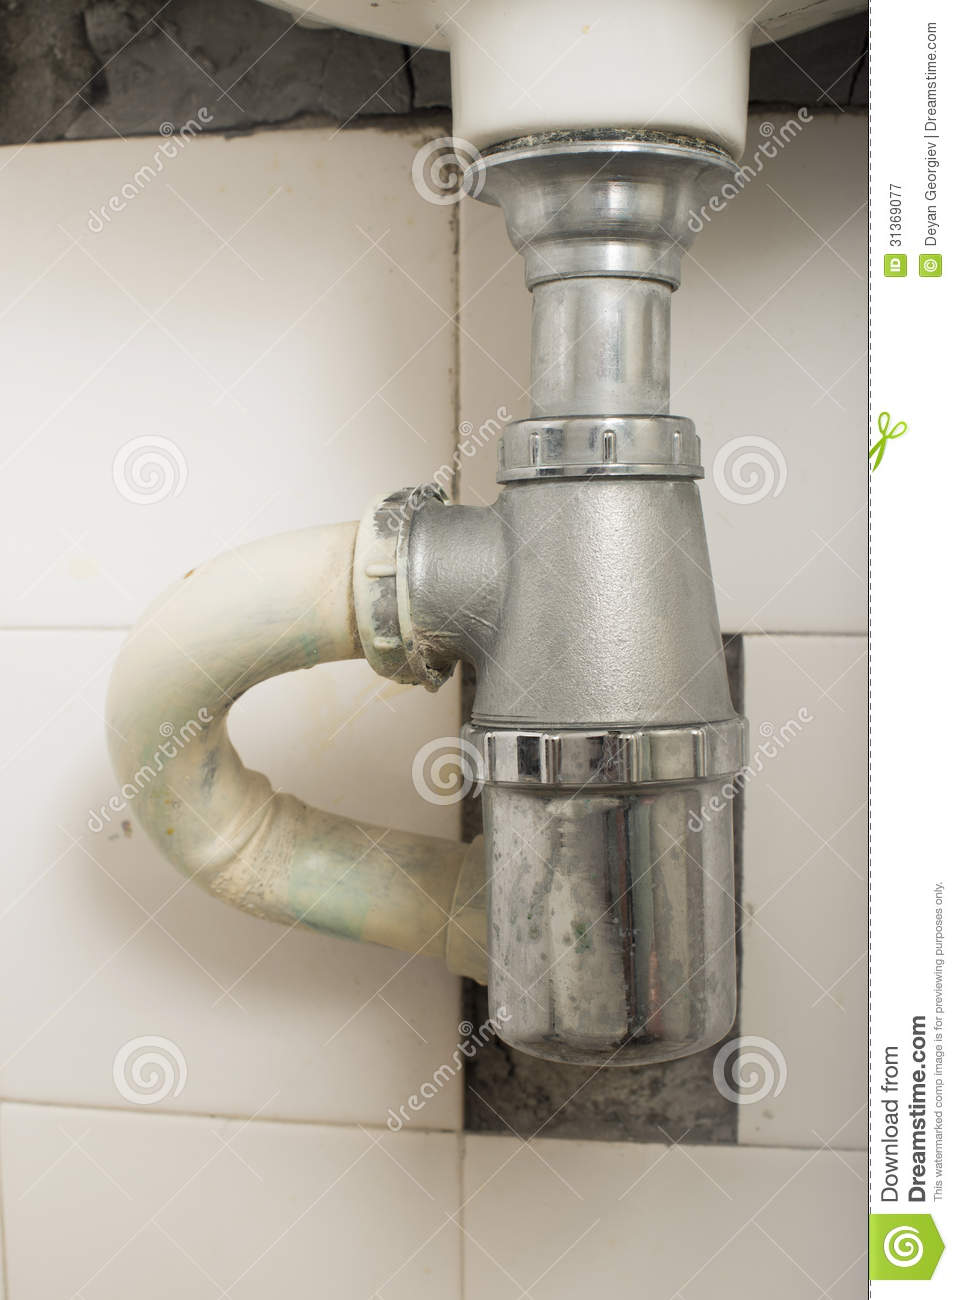 Kitchen Sink Pipes : Sink And Pipes Royalty Free Stock Photography - Image: 31369077